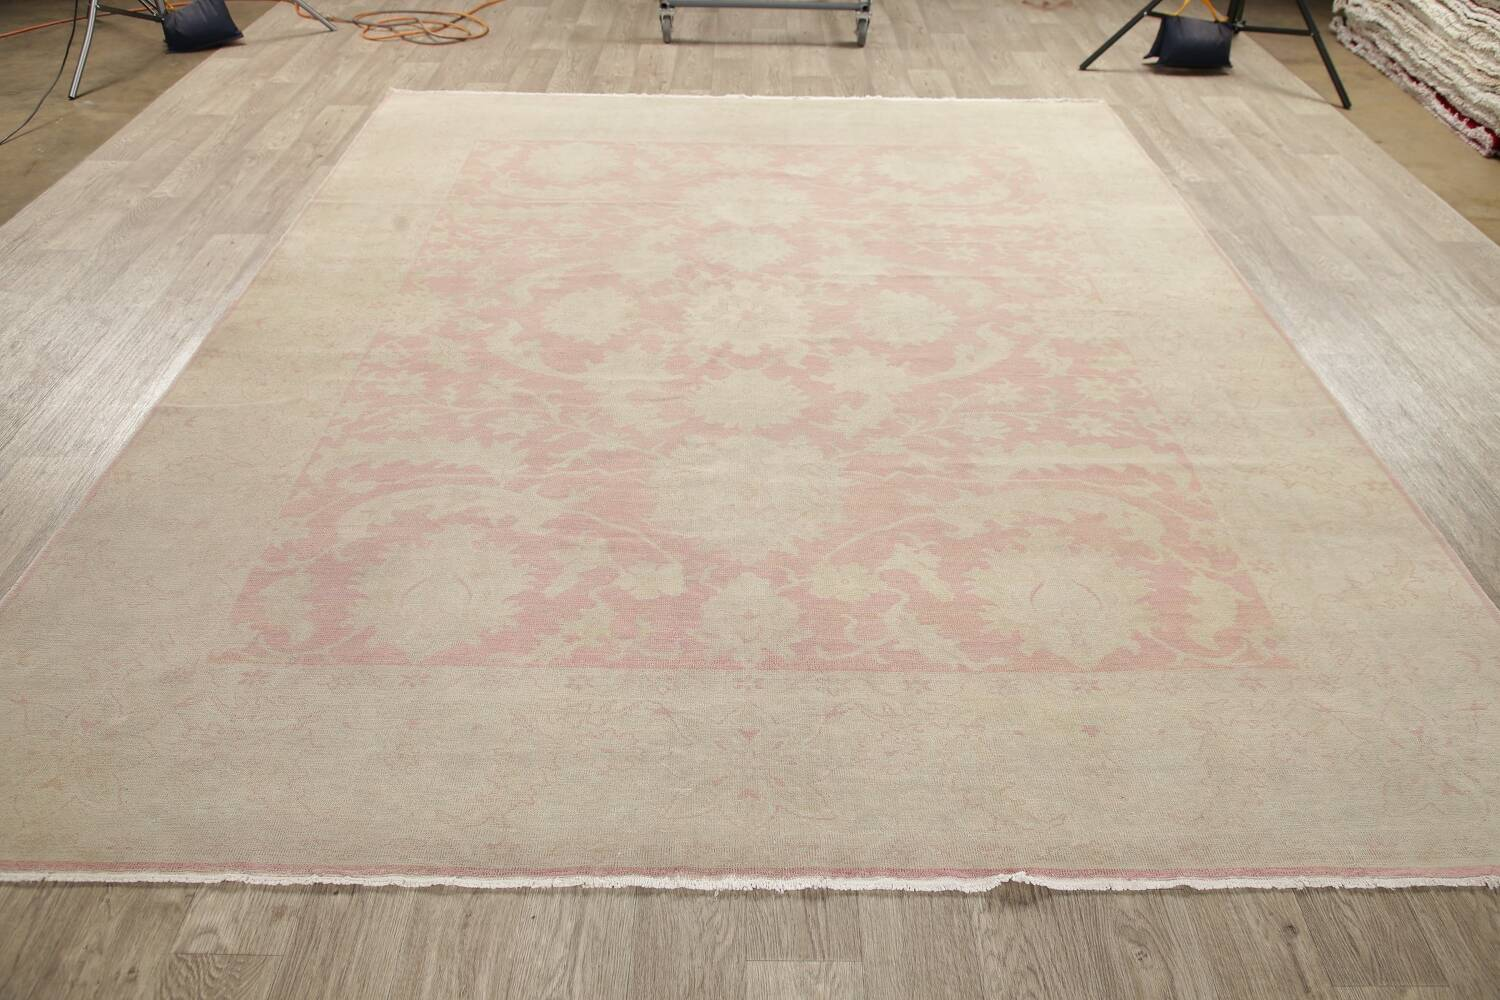 Antique Muted Floral Oushak Turkish Area Rug 8x10 image 16